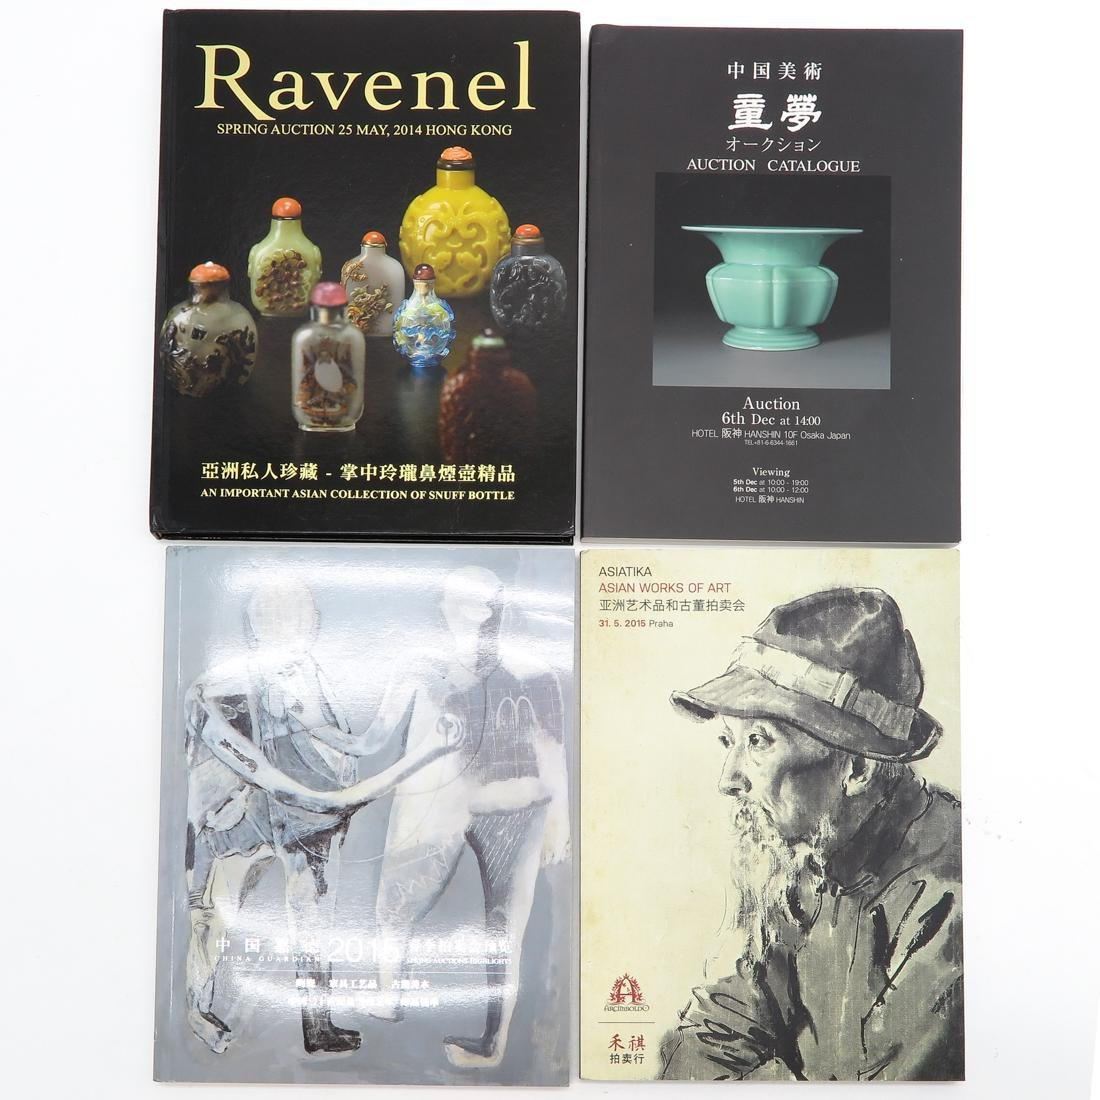 Lot of Asian Subject Auction Catalogs - 5